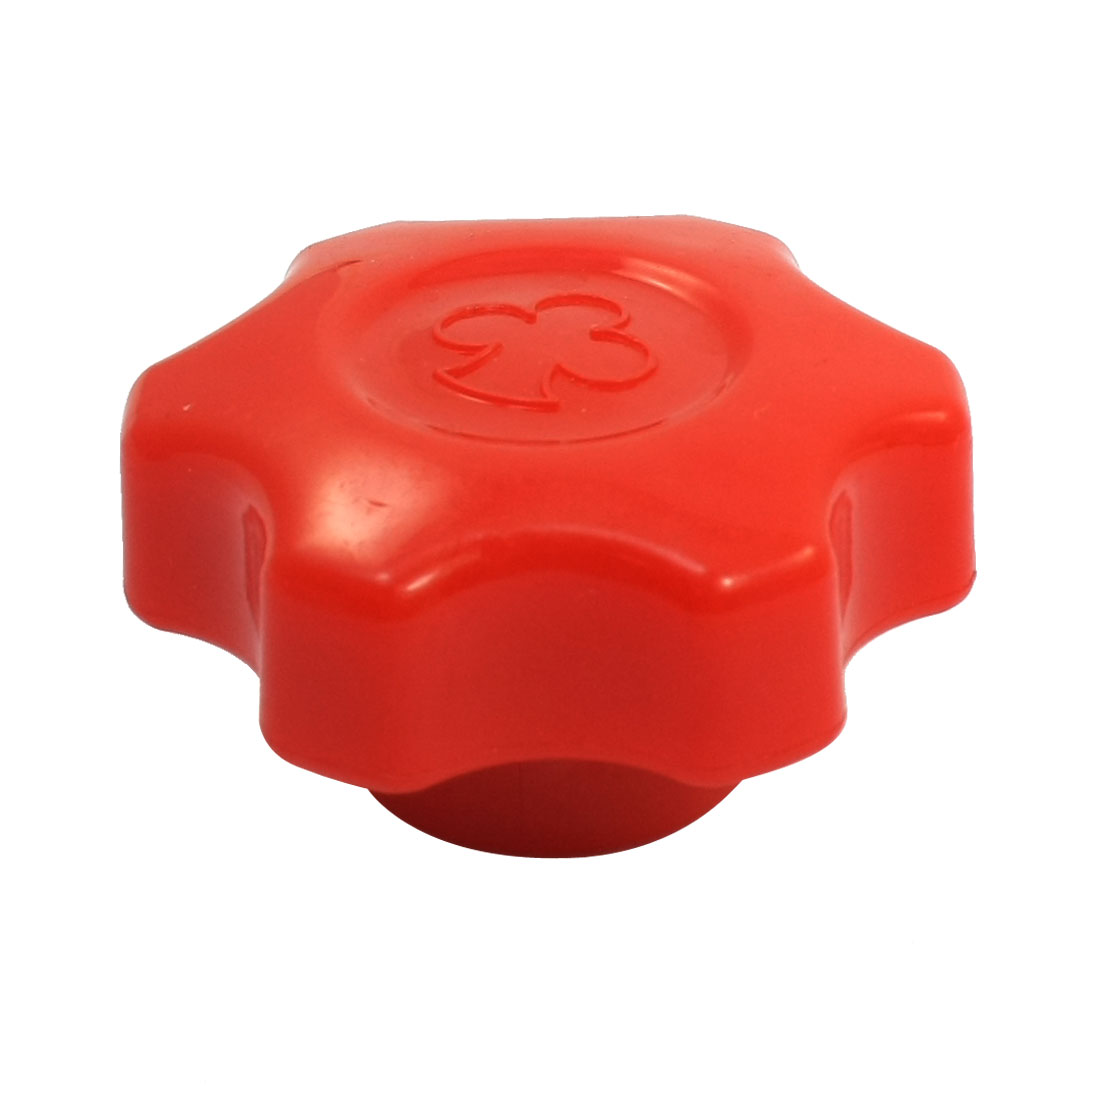 M12 60mm Dia Thread Plastic Six Pointed Star Head Clamping Knob Red